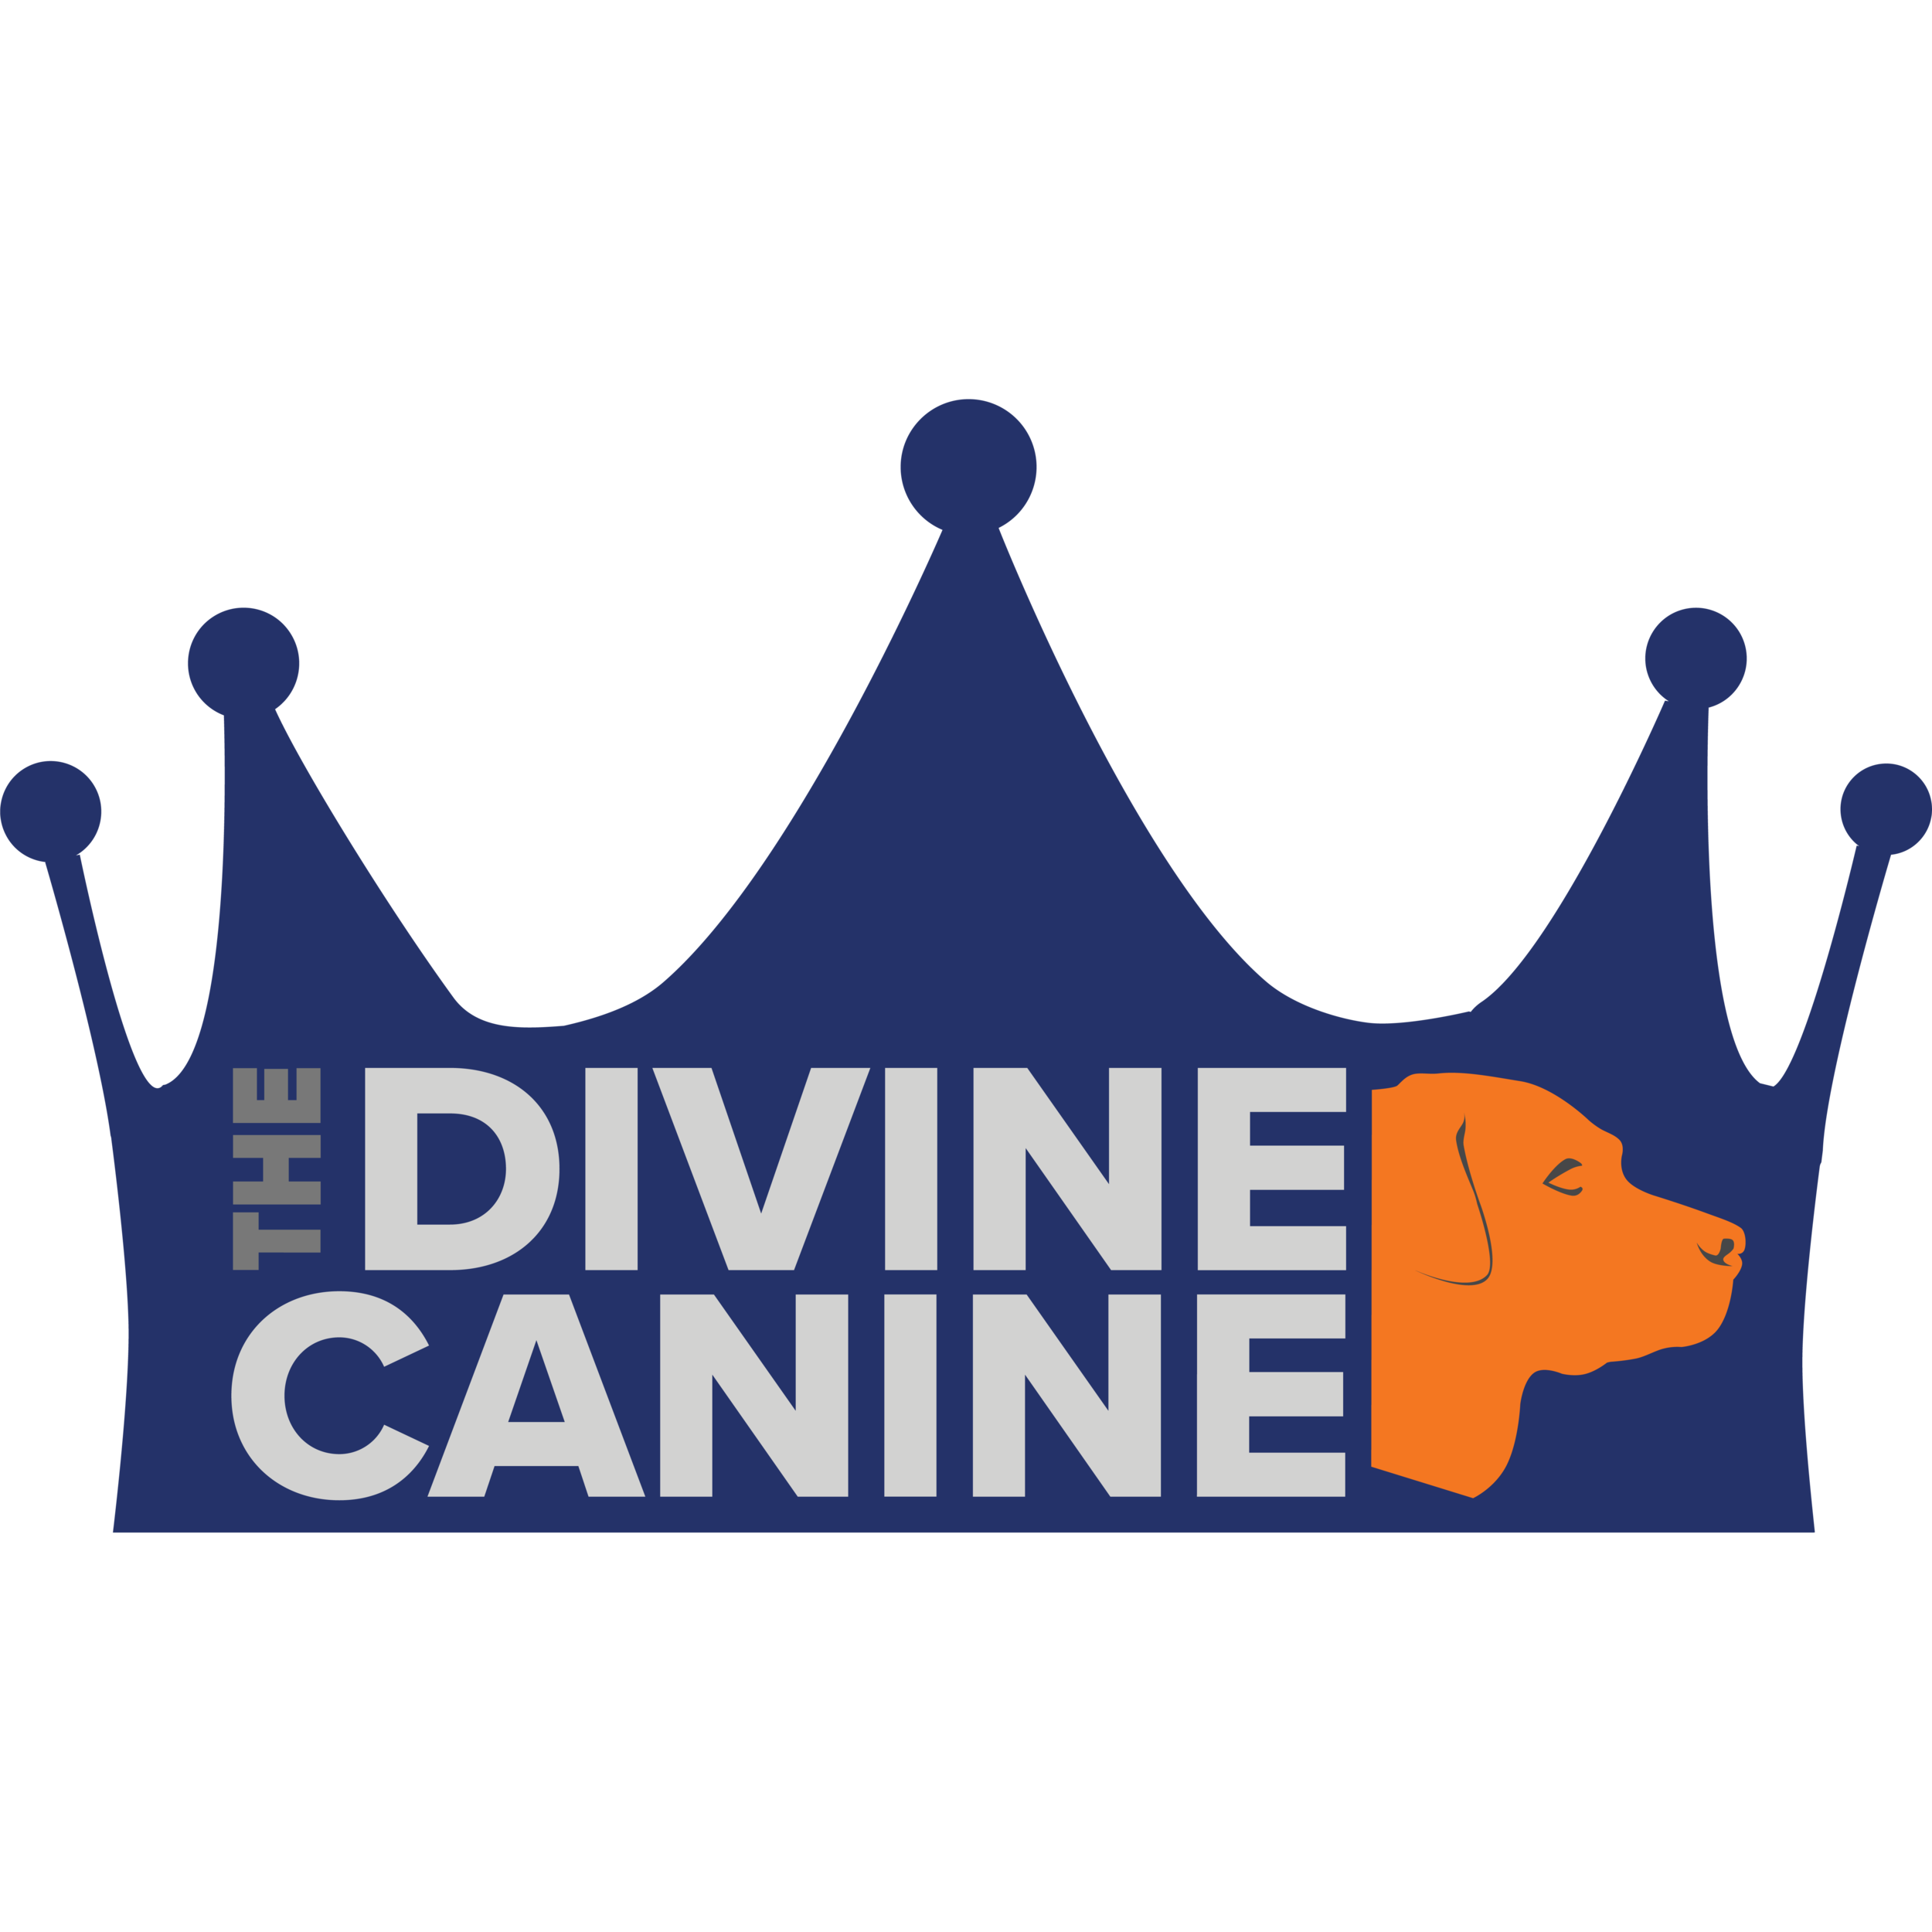 The Divine Canine